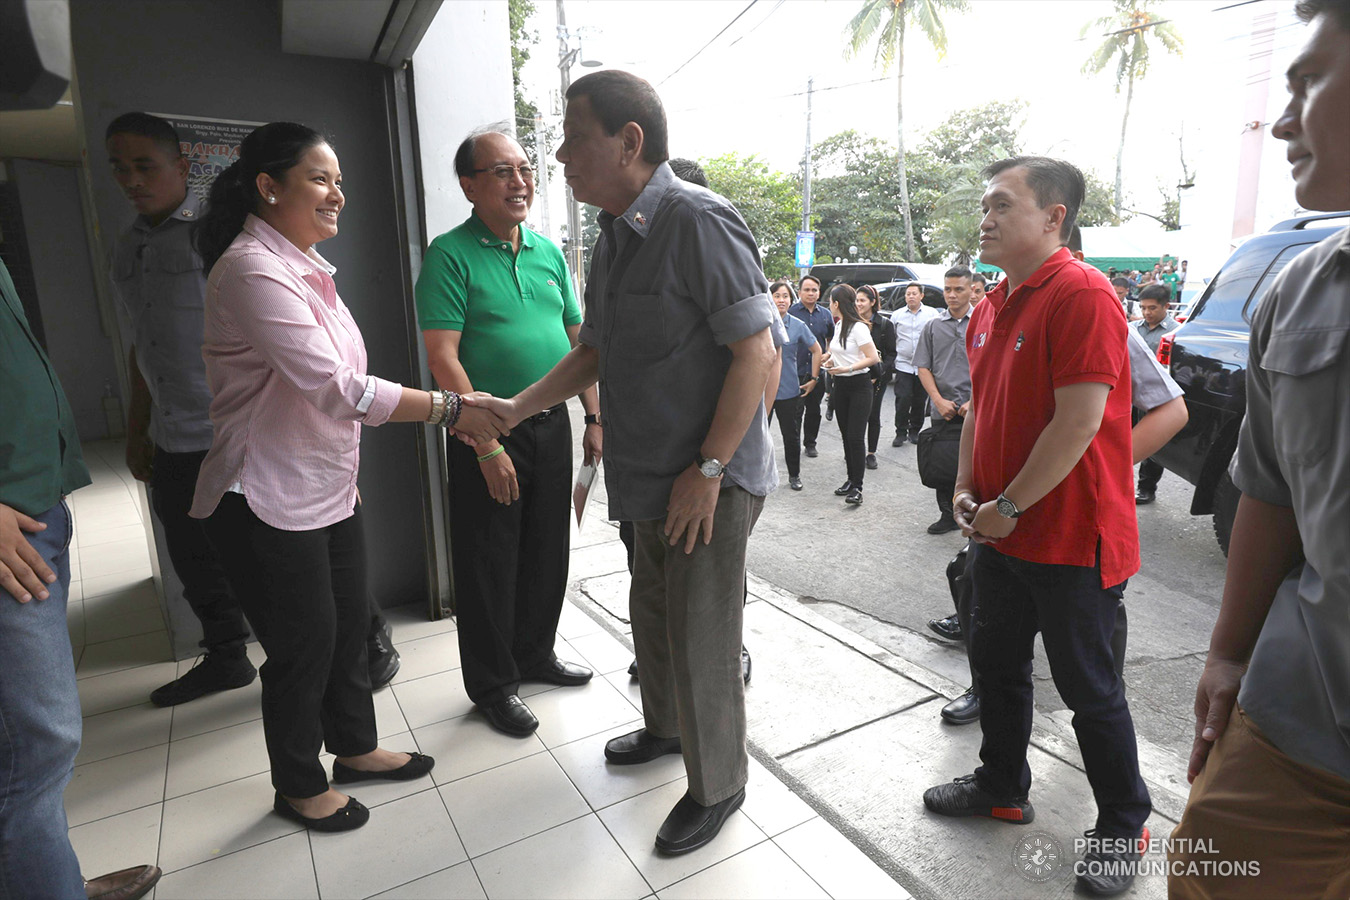 President Rodrigo Roa Duterte is welcomed by Alliance of Organizations, Networks, and Associations (ALONA) Partylist Representative Anna Suarez upon his arrival at the Quezon Convention Center in Lucena City, province of Quezon on his way to attend the annual assembly of the Provincial Union of Leaders Against Illegality (PULI) on January 22, 2019. TOTO LOZANO/PRESIDENTIAL PHOTO